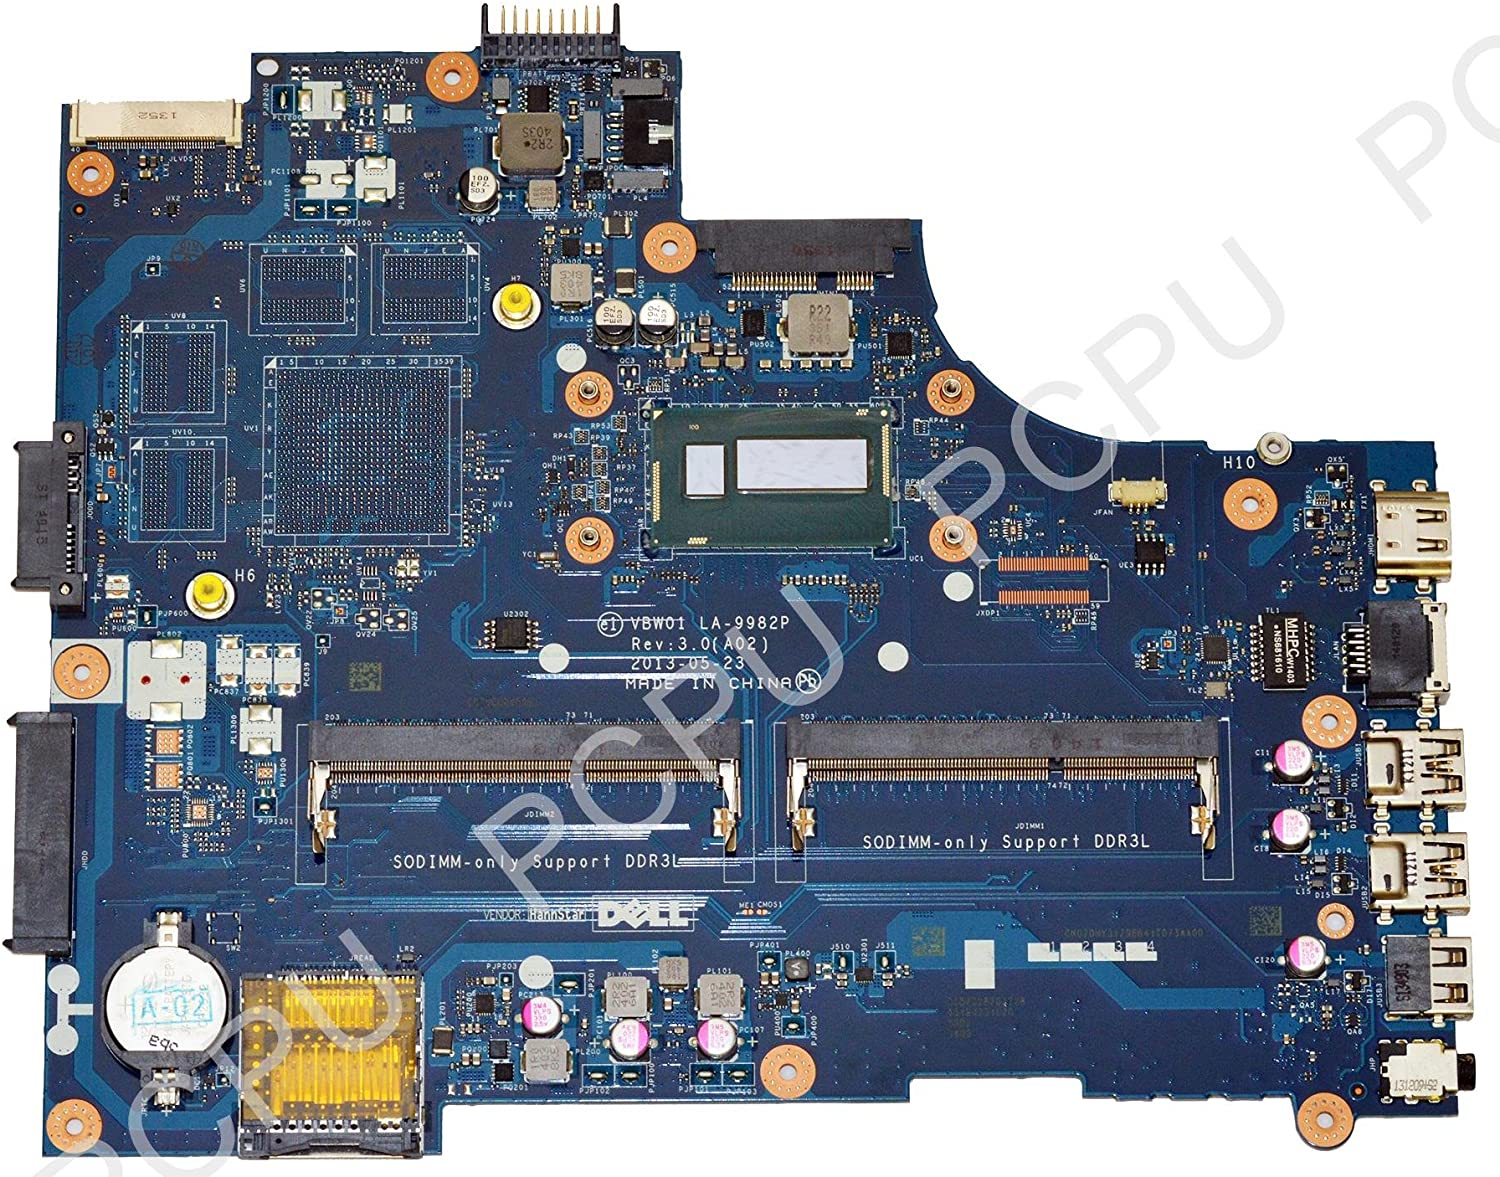 7DHY3 Dell Inspiron 15R 5537 Laptop Motherboard w/Intel i5-4200U 1.6GHz CPU